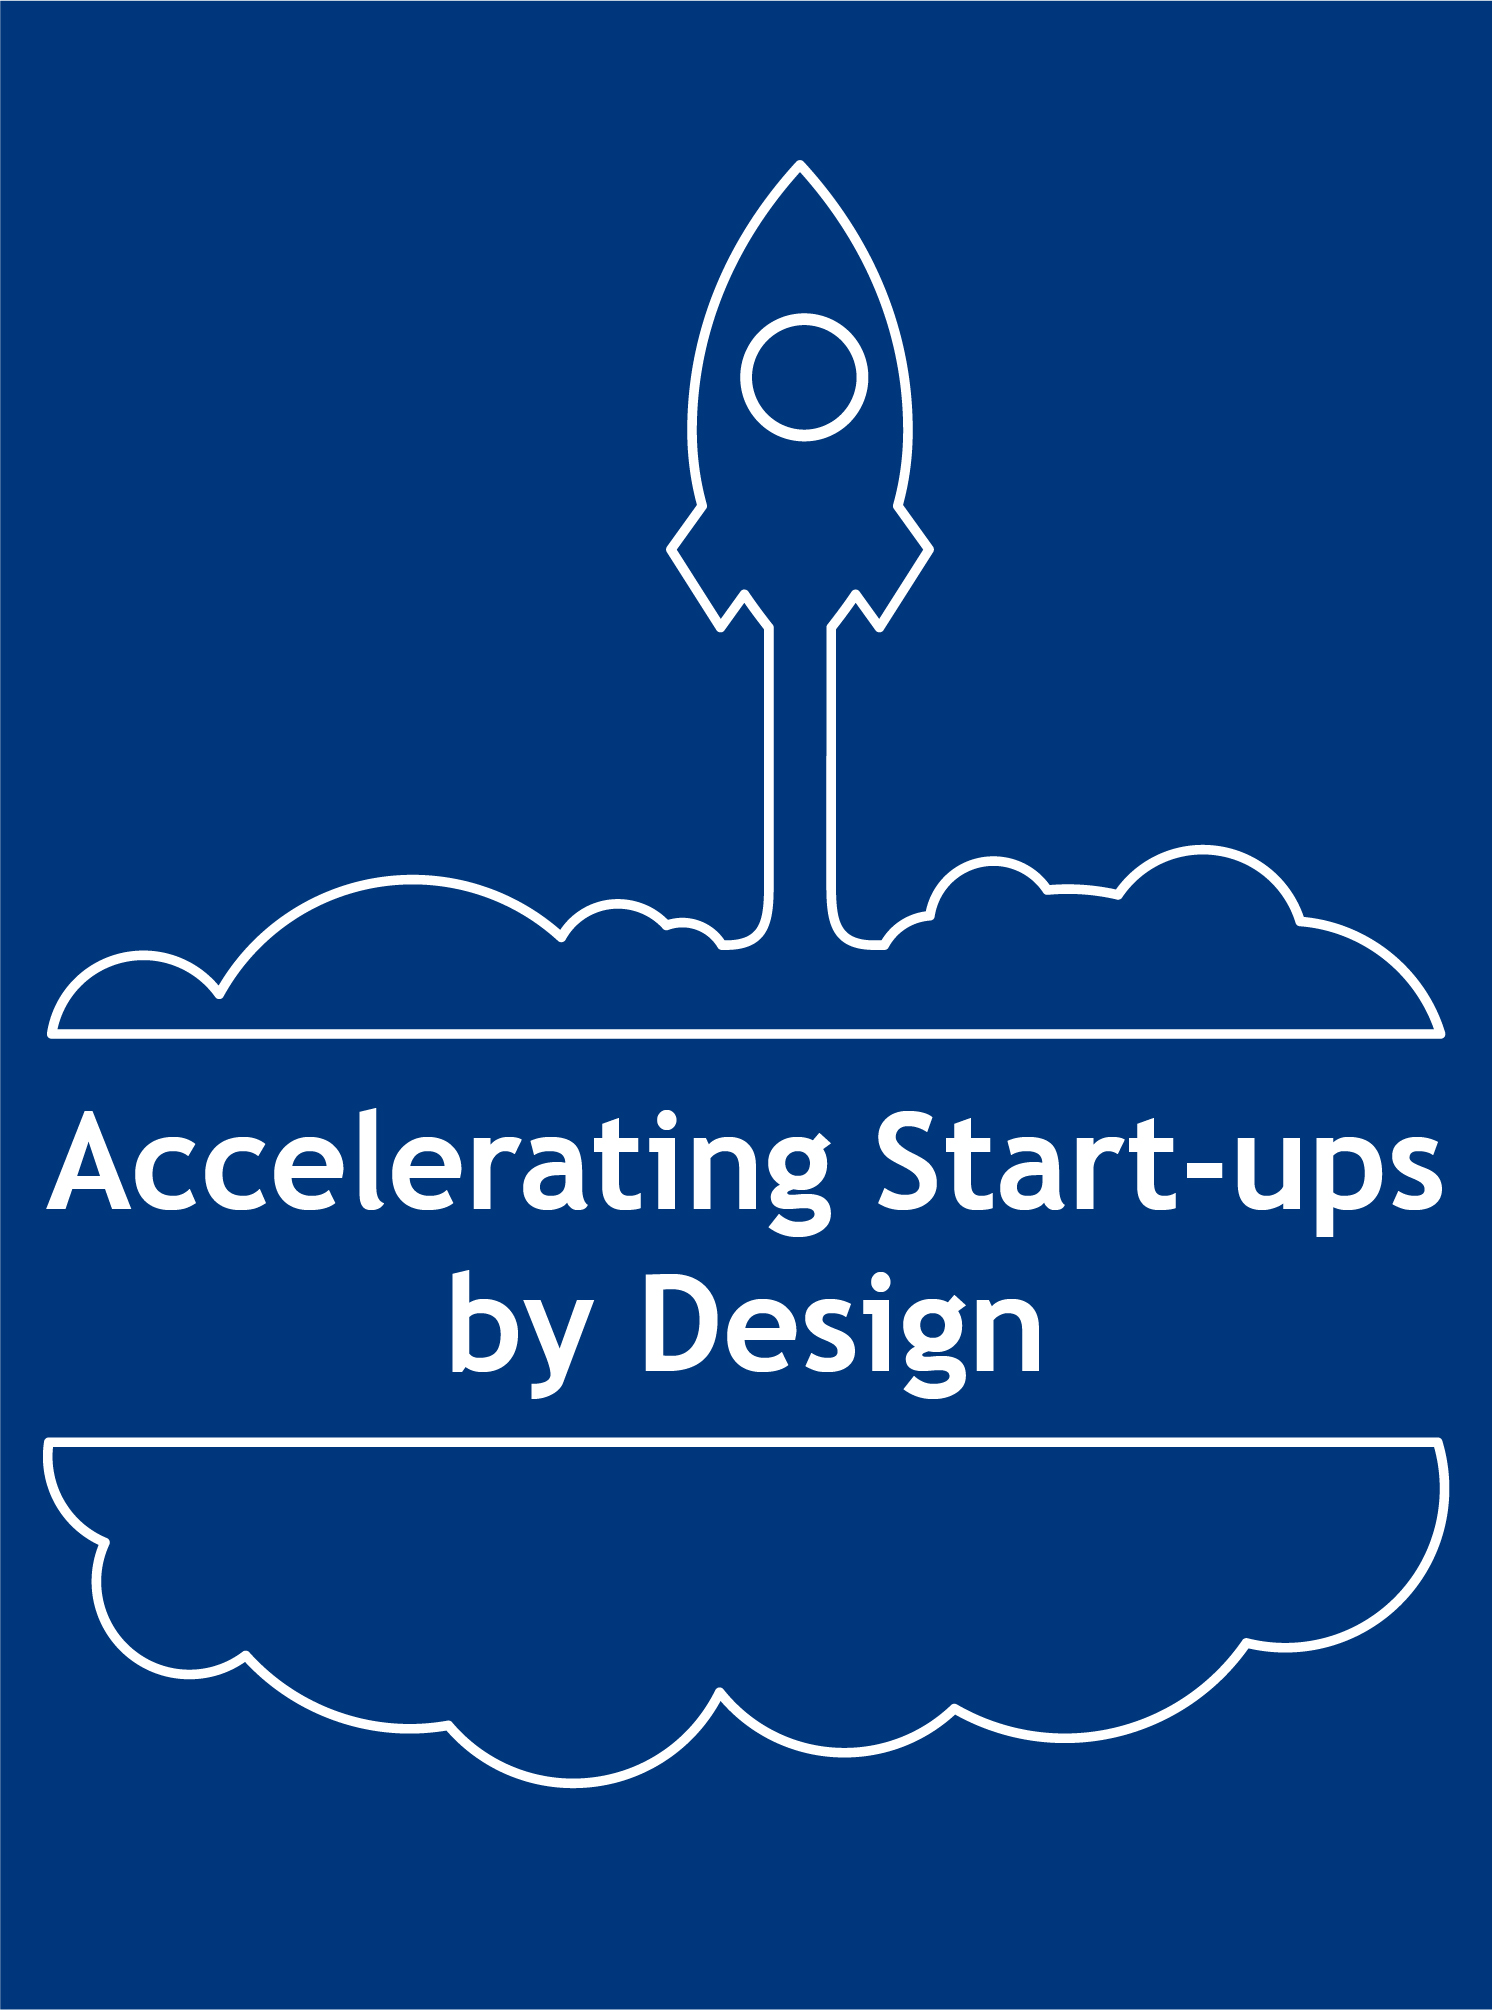 Accelerating Start-ups by Design